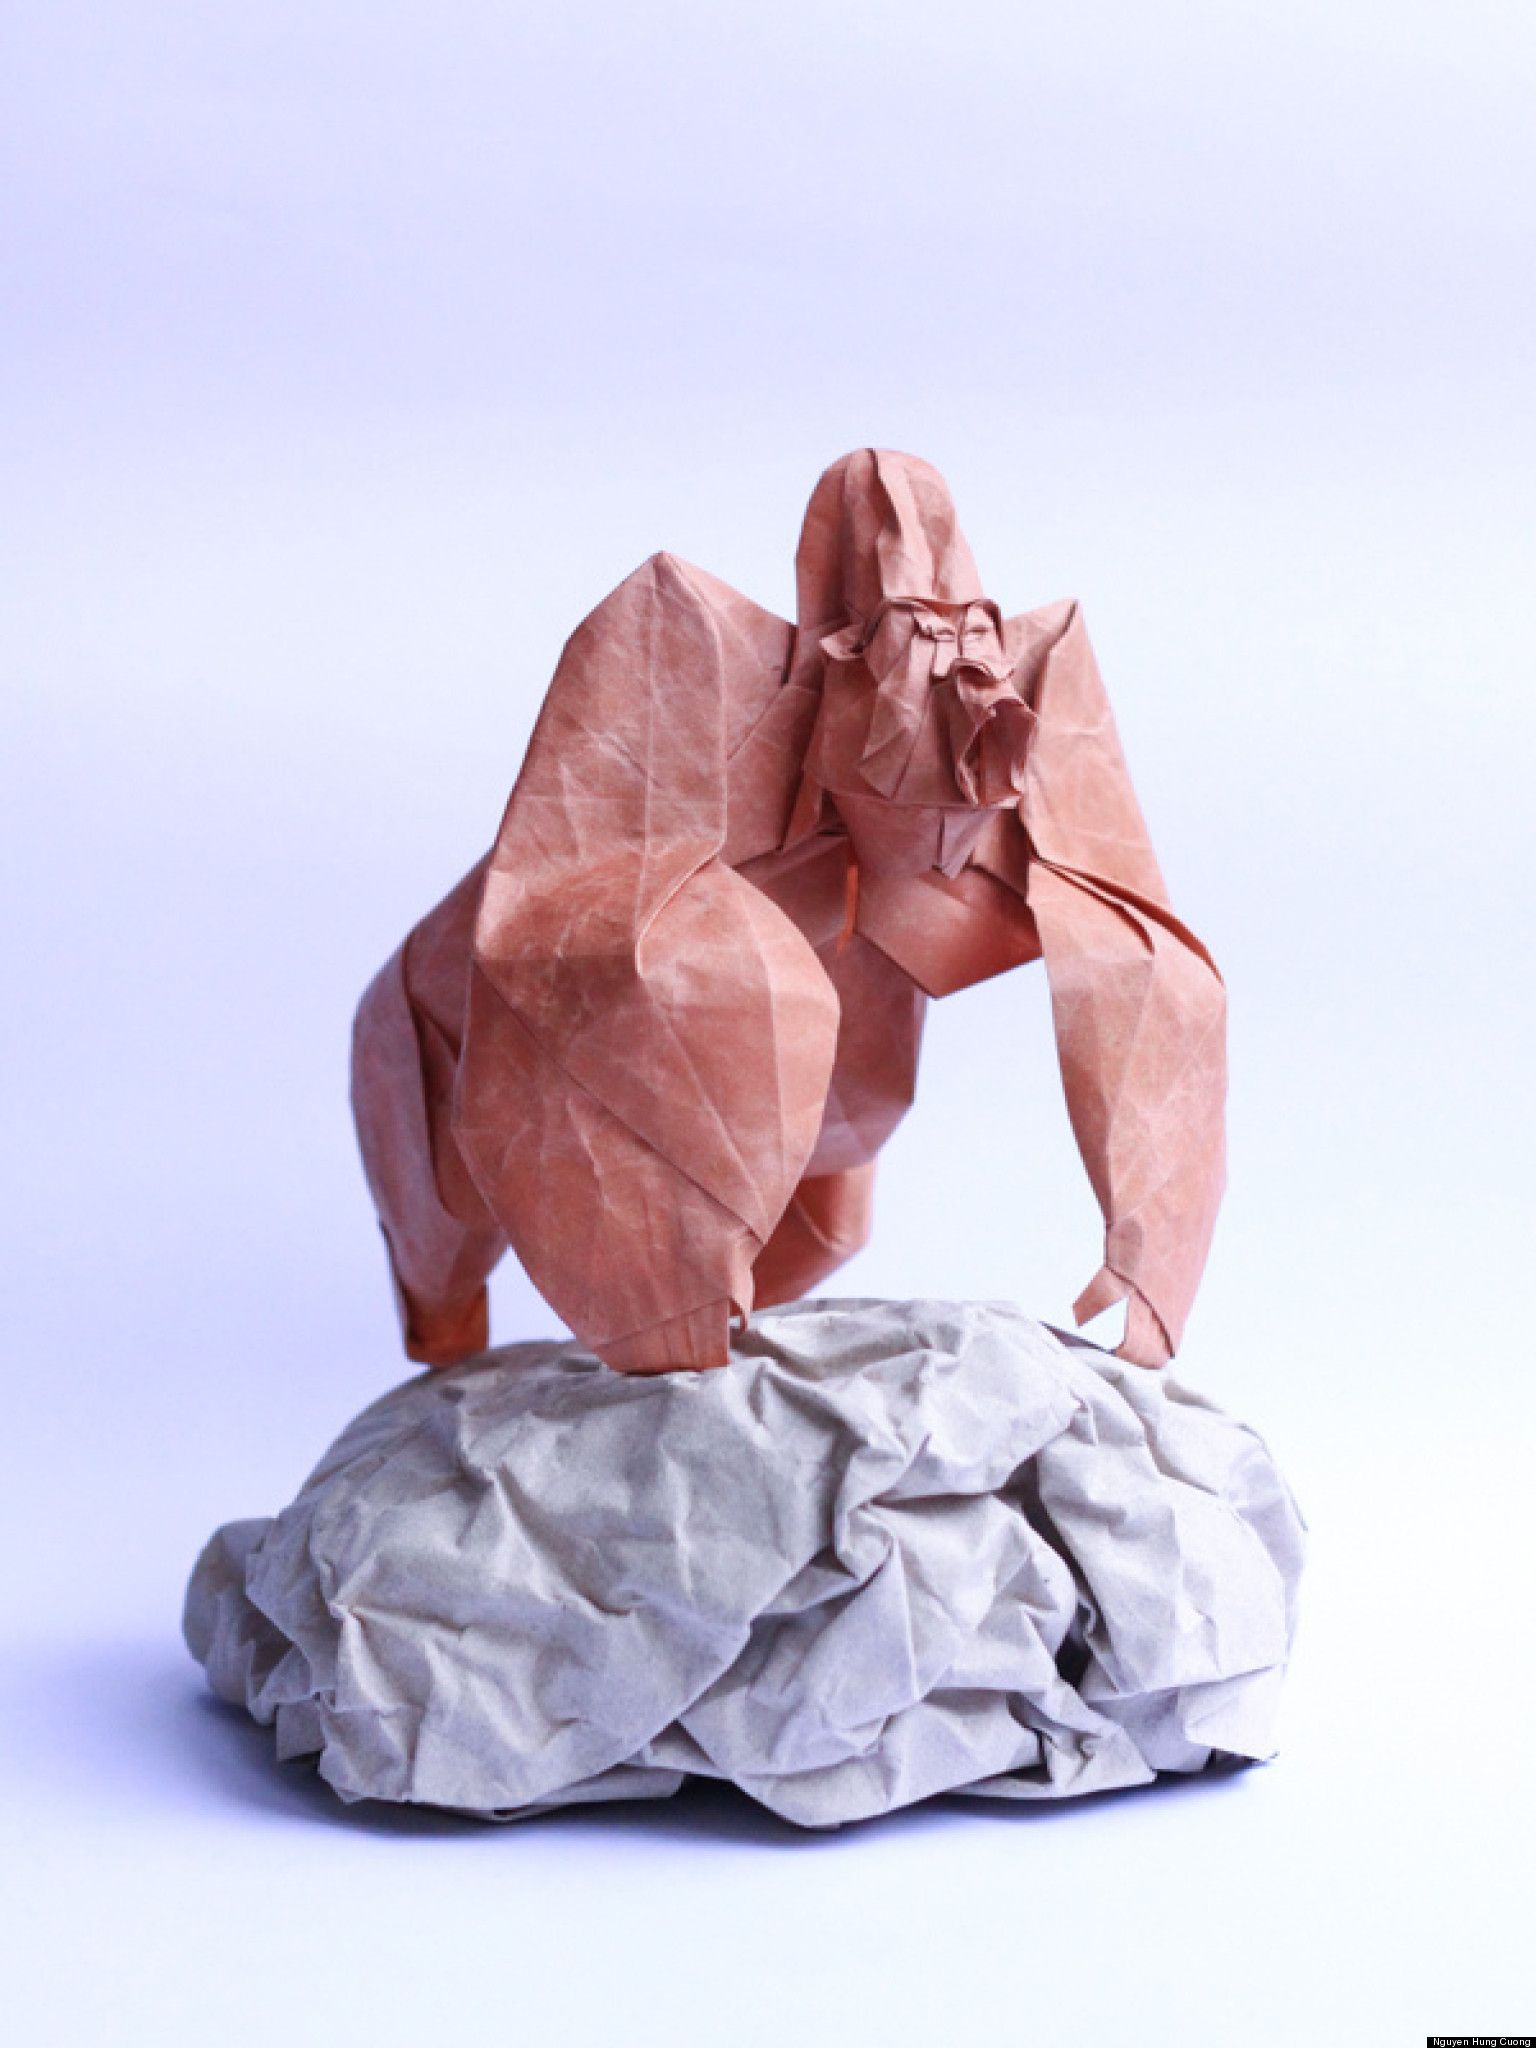 Look Origami Artist Creates Incredible Shapes Origami Paper Art Origami Artist Origami Animals